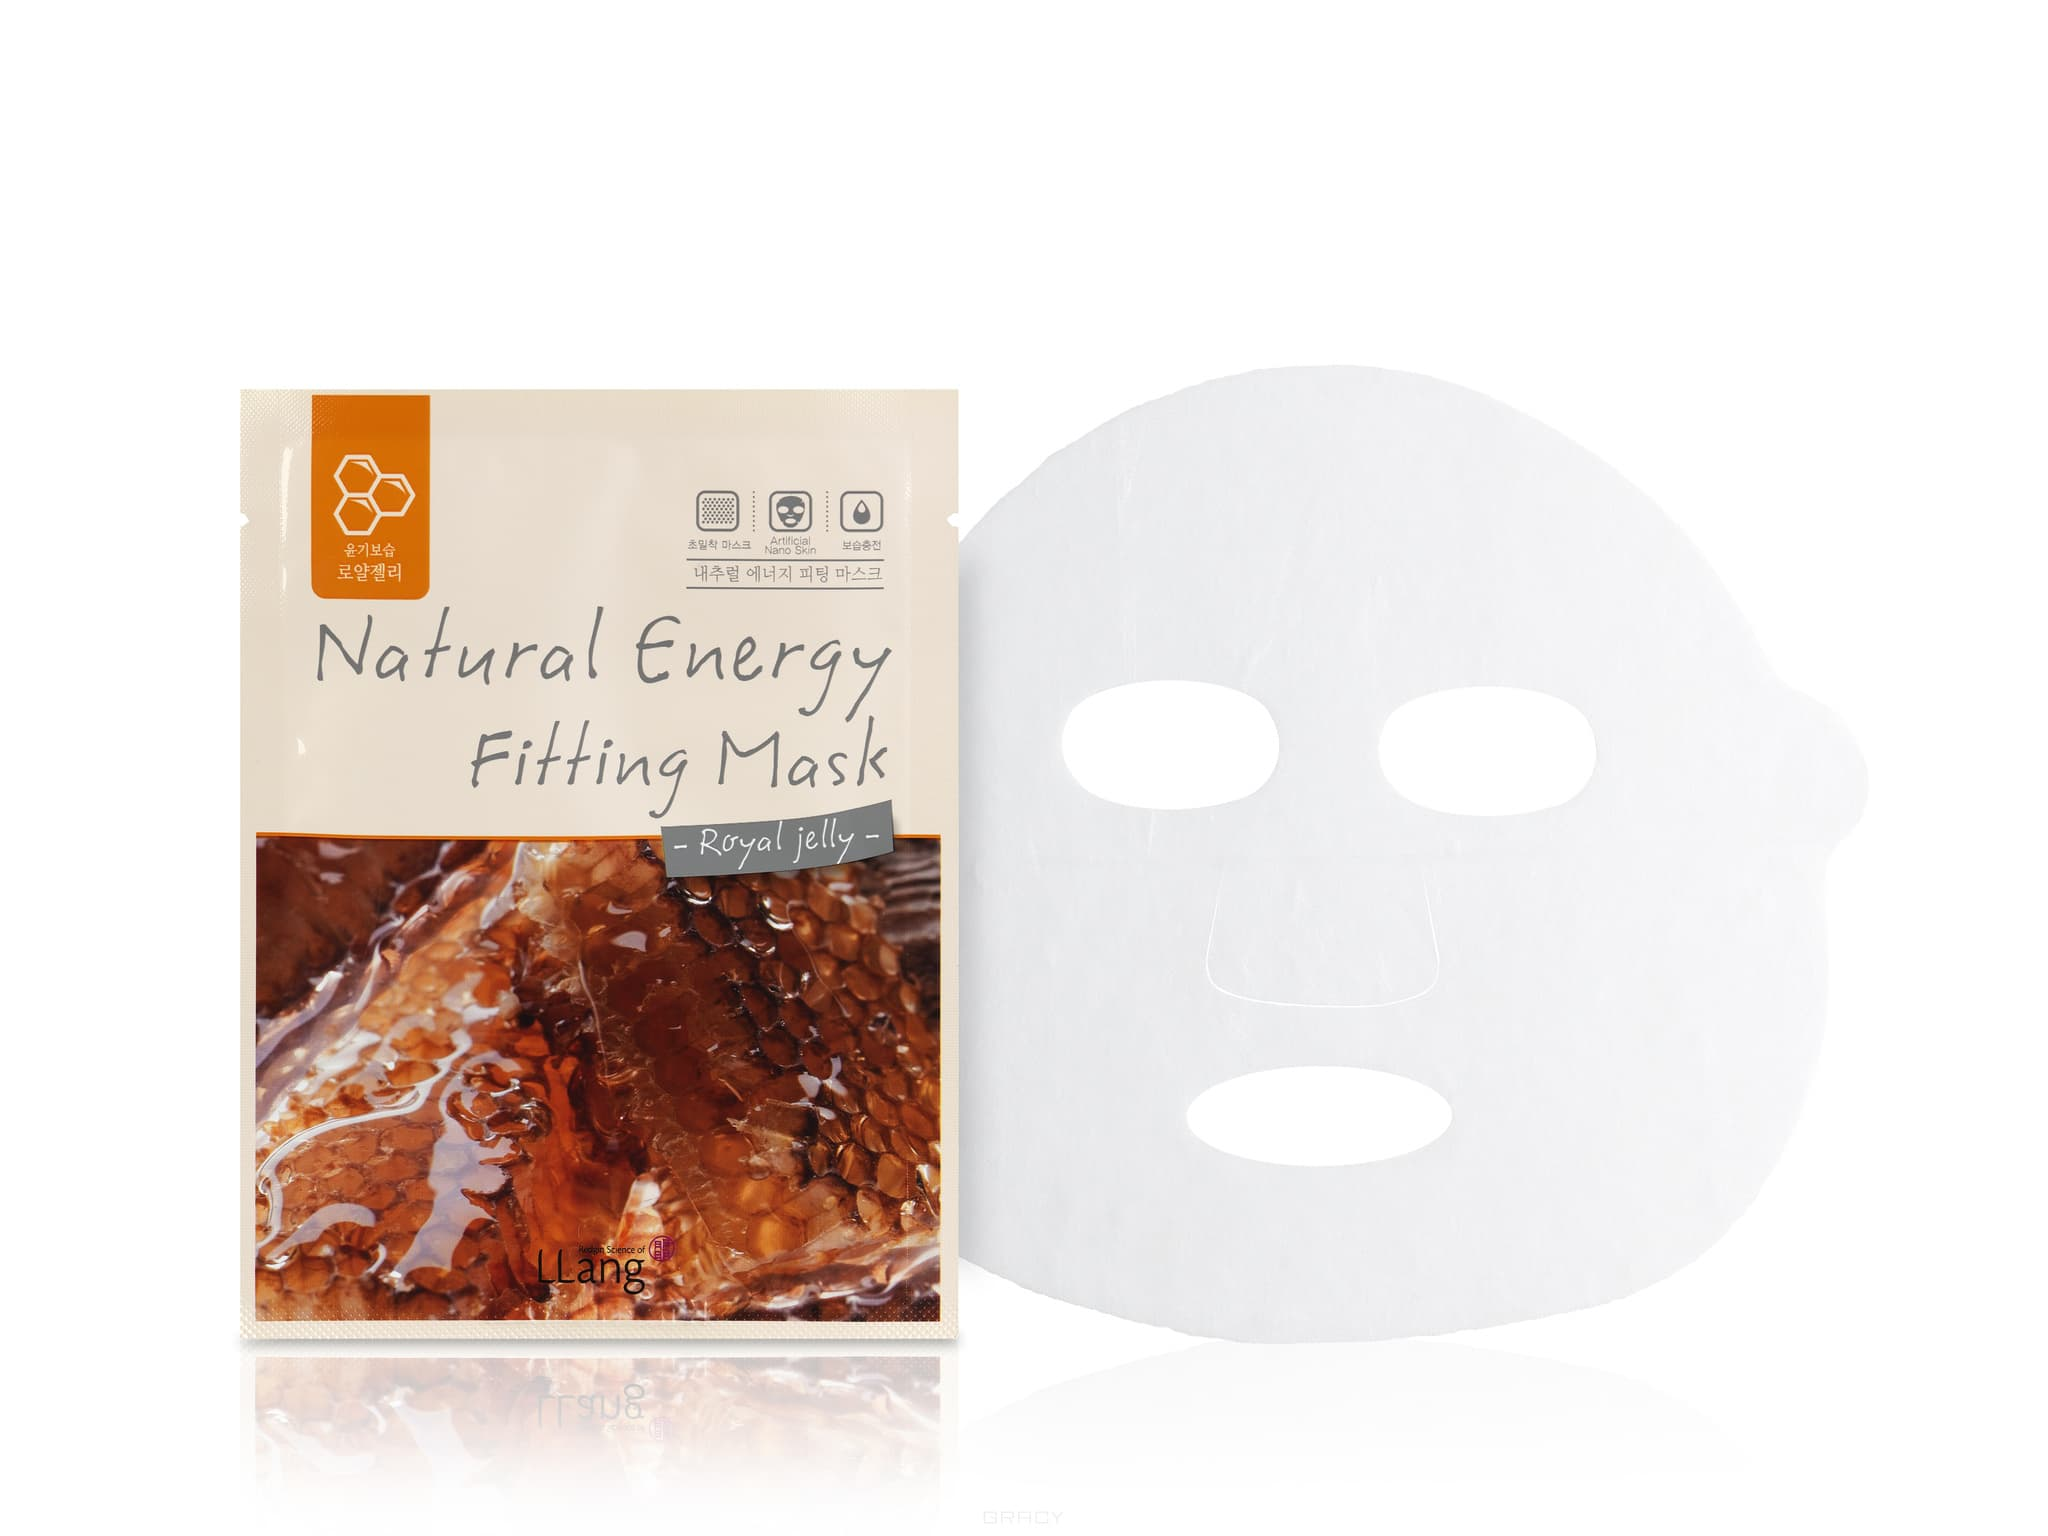 LLang Тканевая маска с экстрактом пчелиного маточного молочка Natural Energy Fitting Mask (Royal jelly), 20 мл cordyceps sinensis 50 1 extract 50